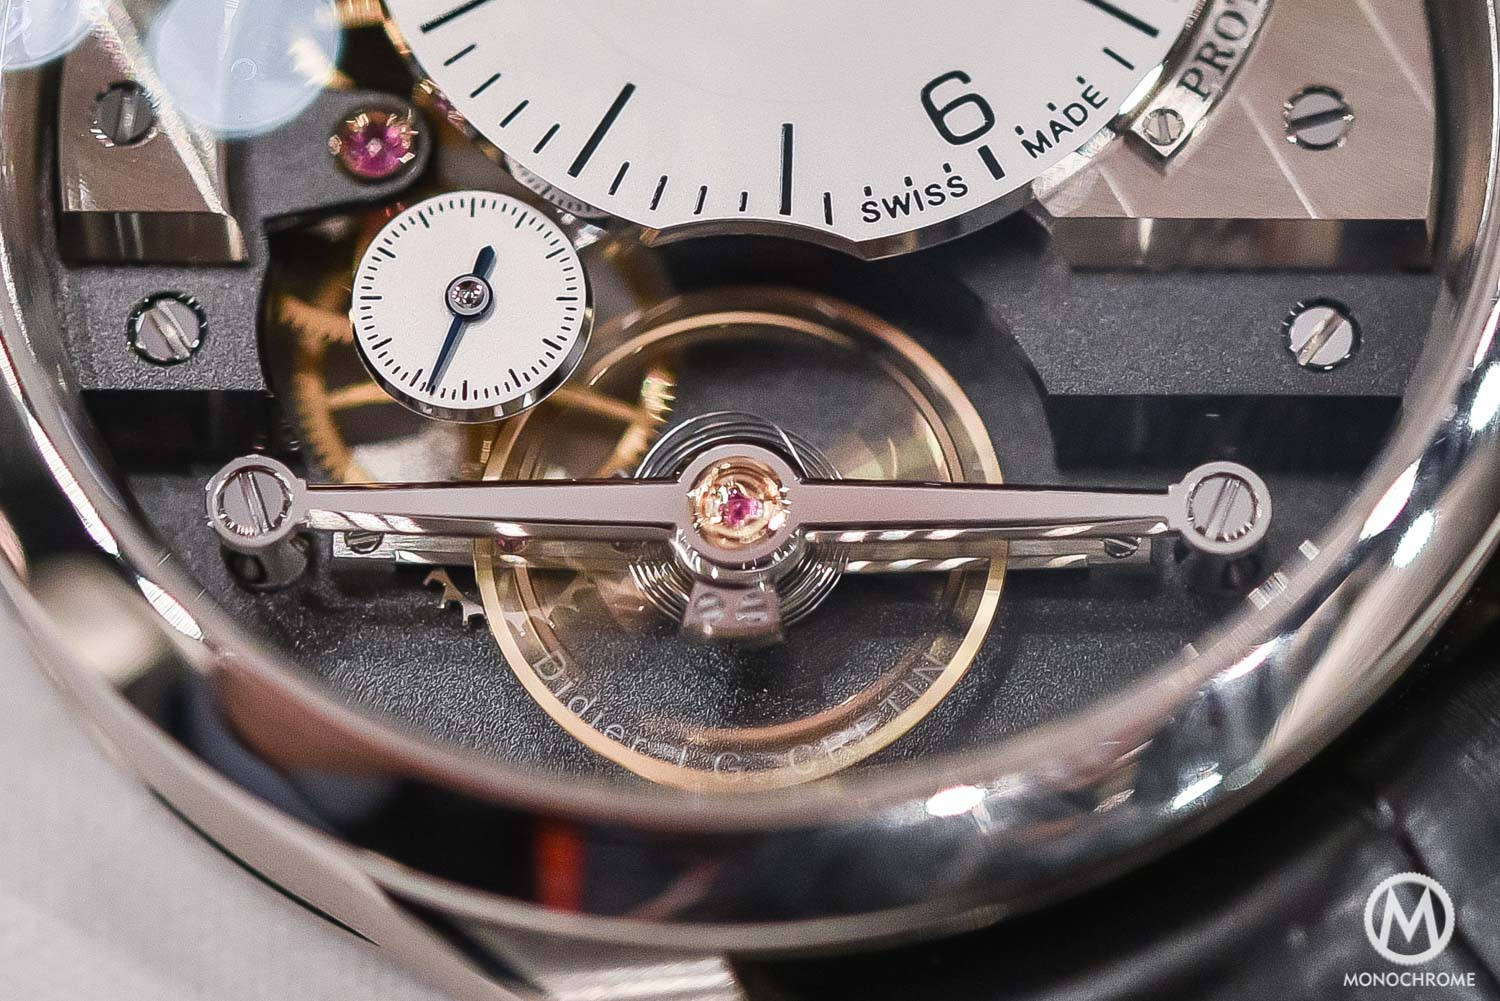 Greubel Forsey Signature 1 - Stainless steel entry level - SIHH 2016 - macro